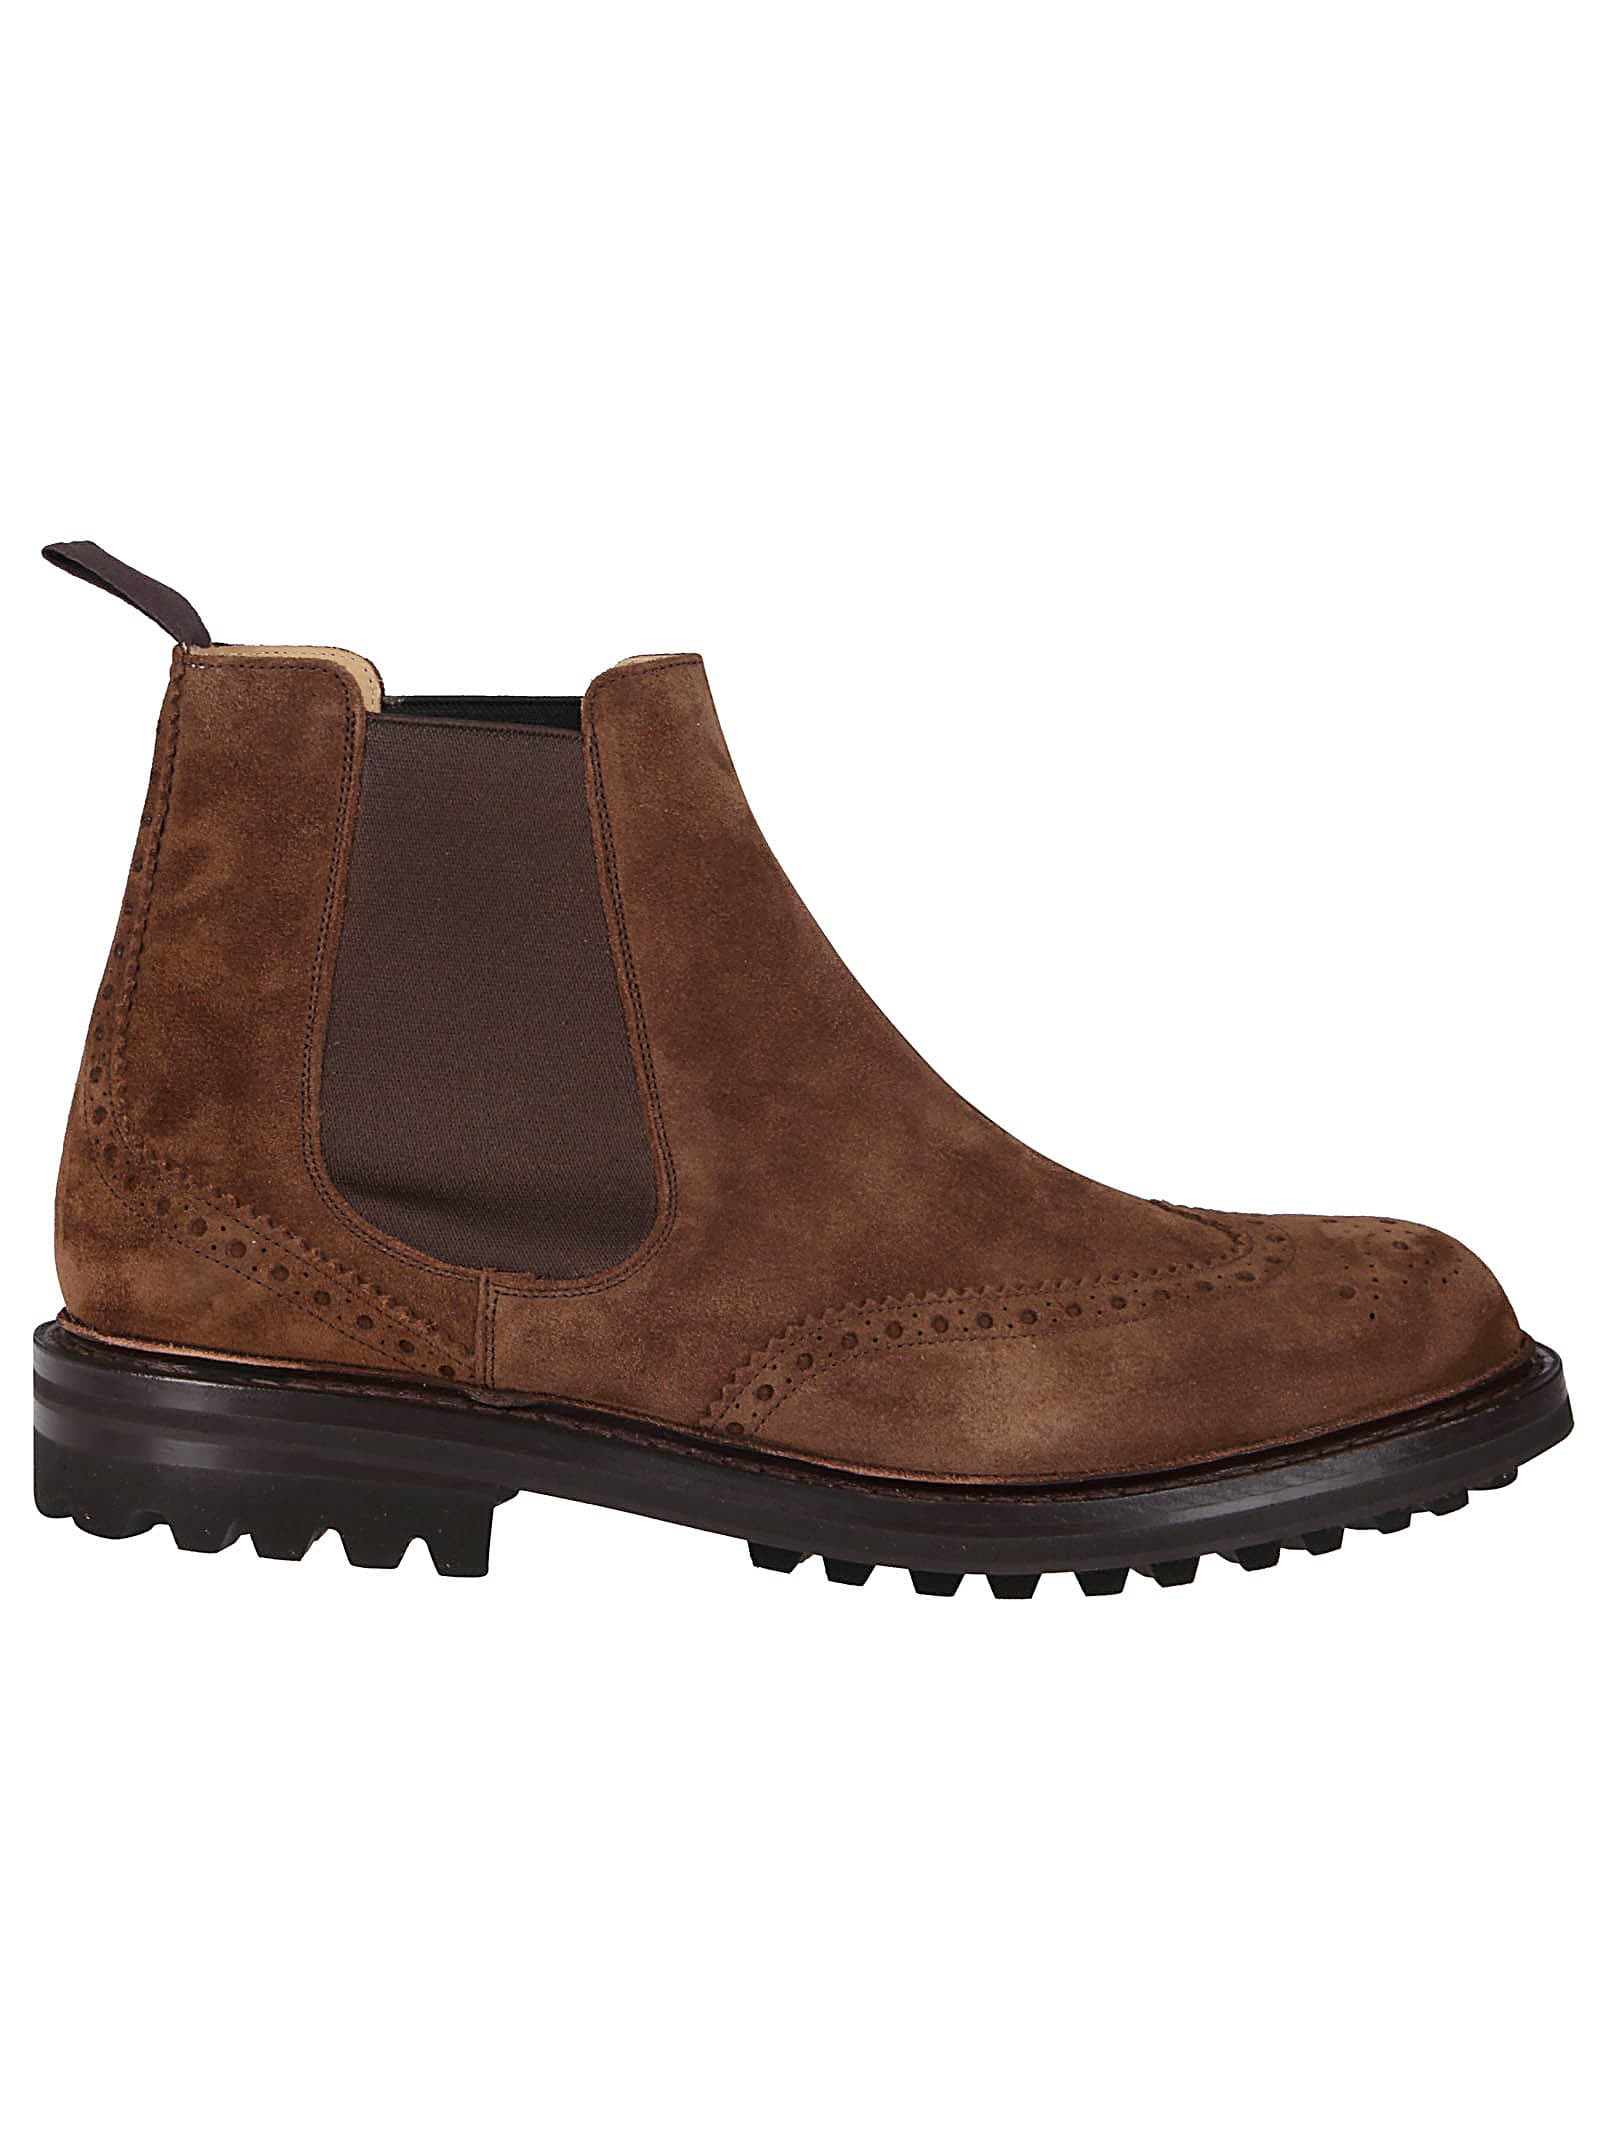 CHURCH'S BROWN SUEDE CHELSEA BOOTS